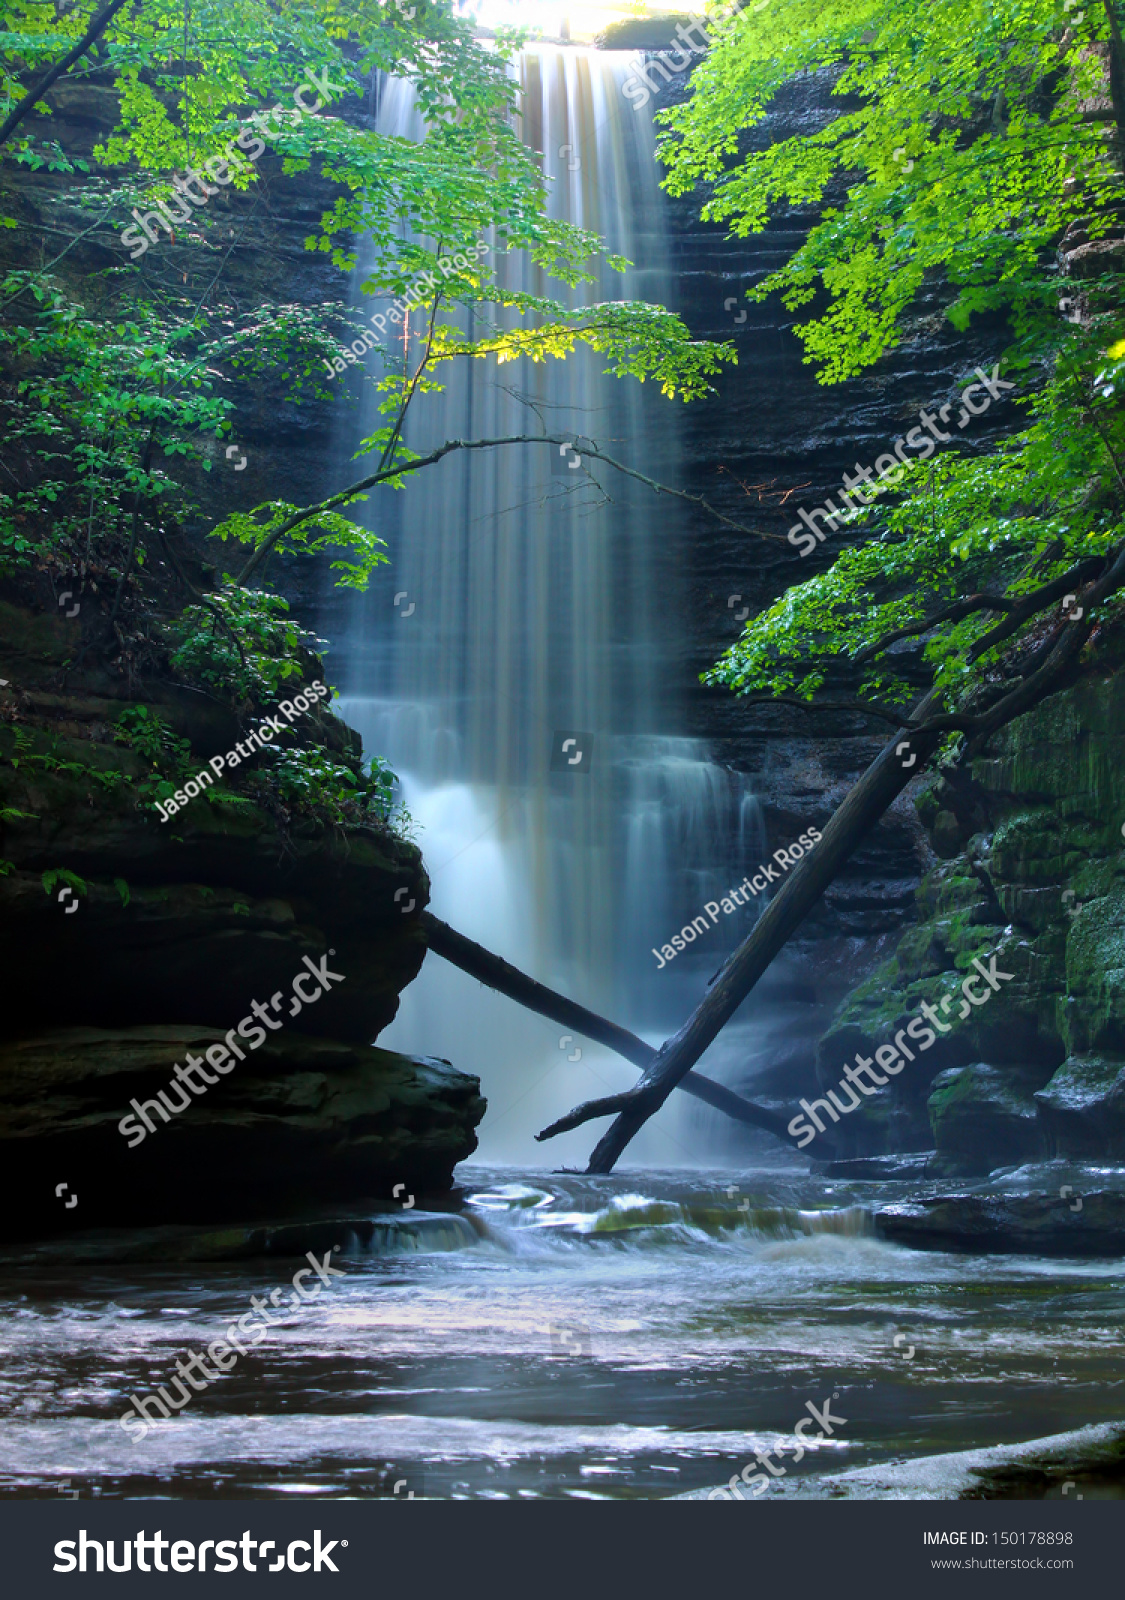 waterfall, lake, forest - Beautiful views wallpapers: 1600x900